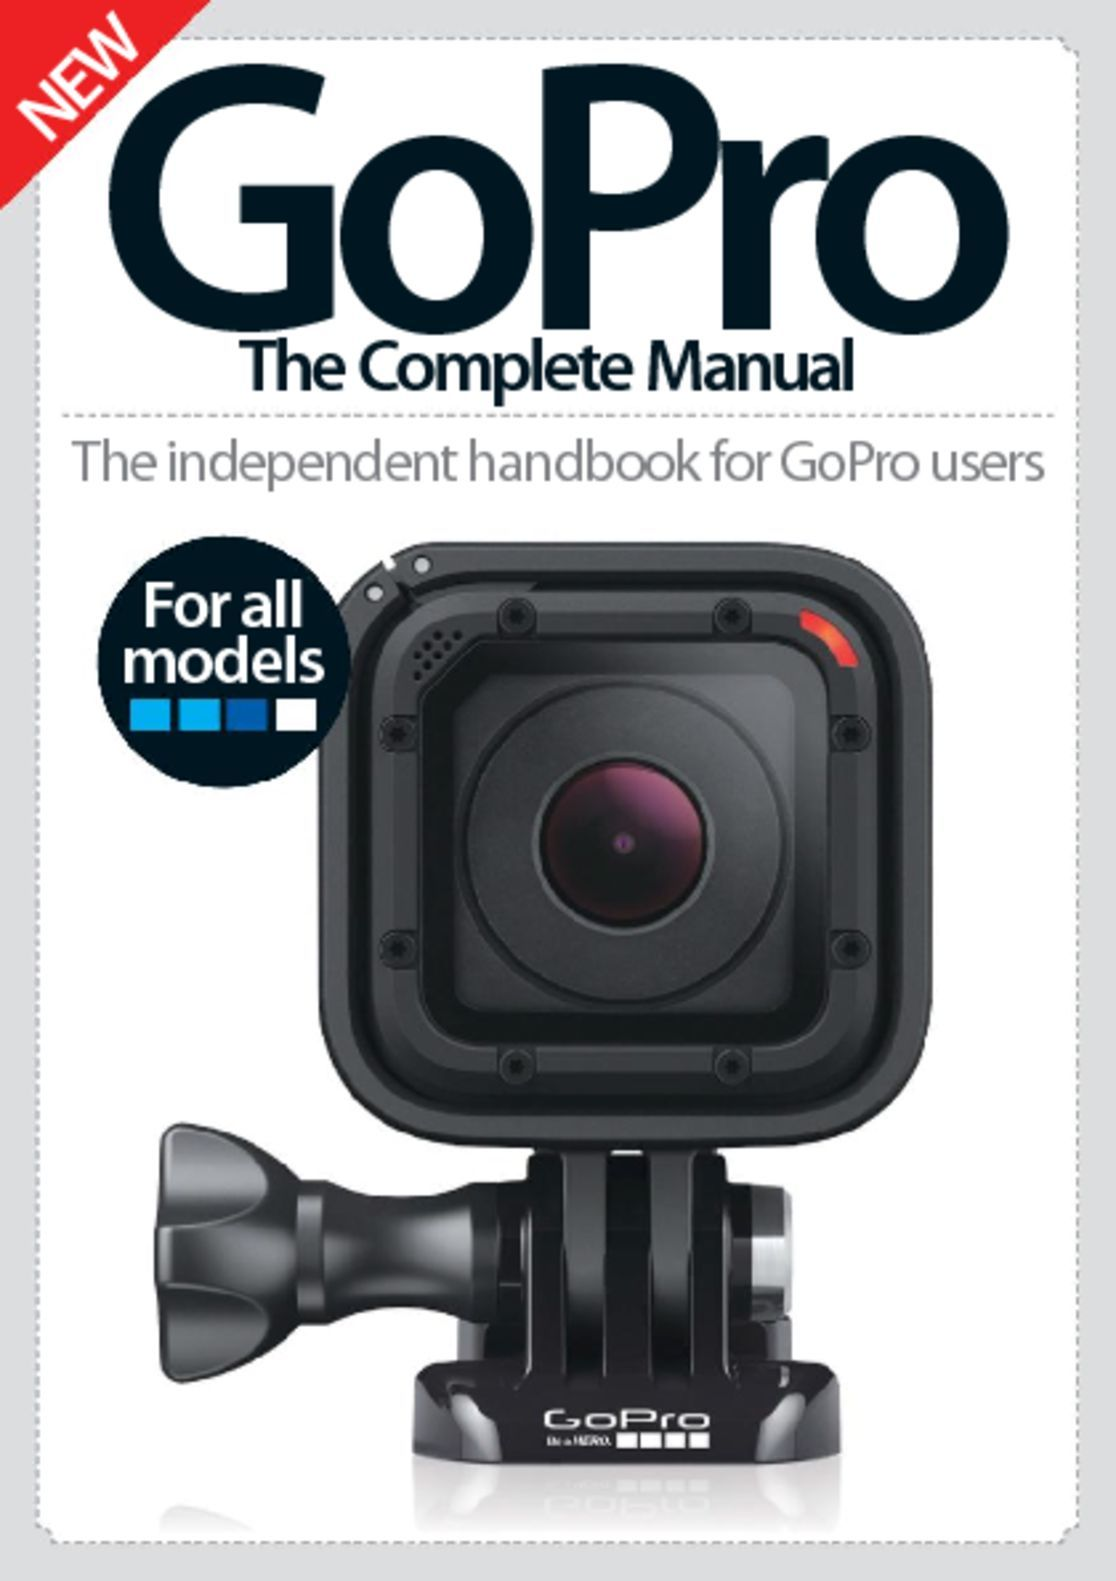 GoPro The Complete Manual (Digital)